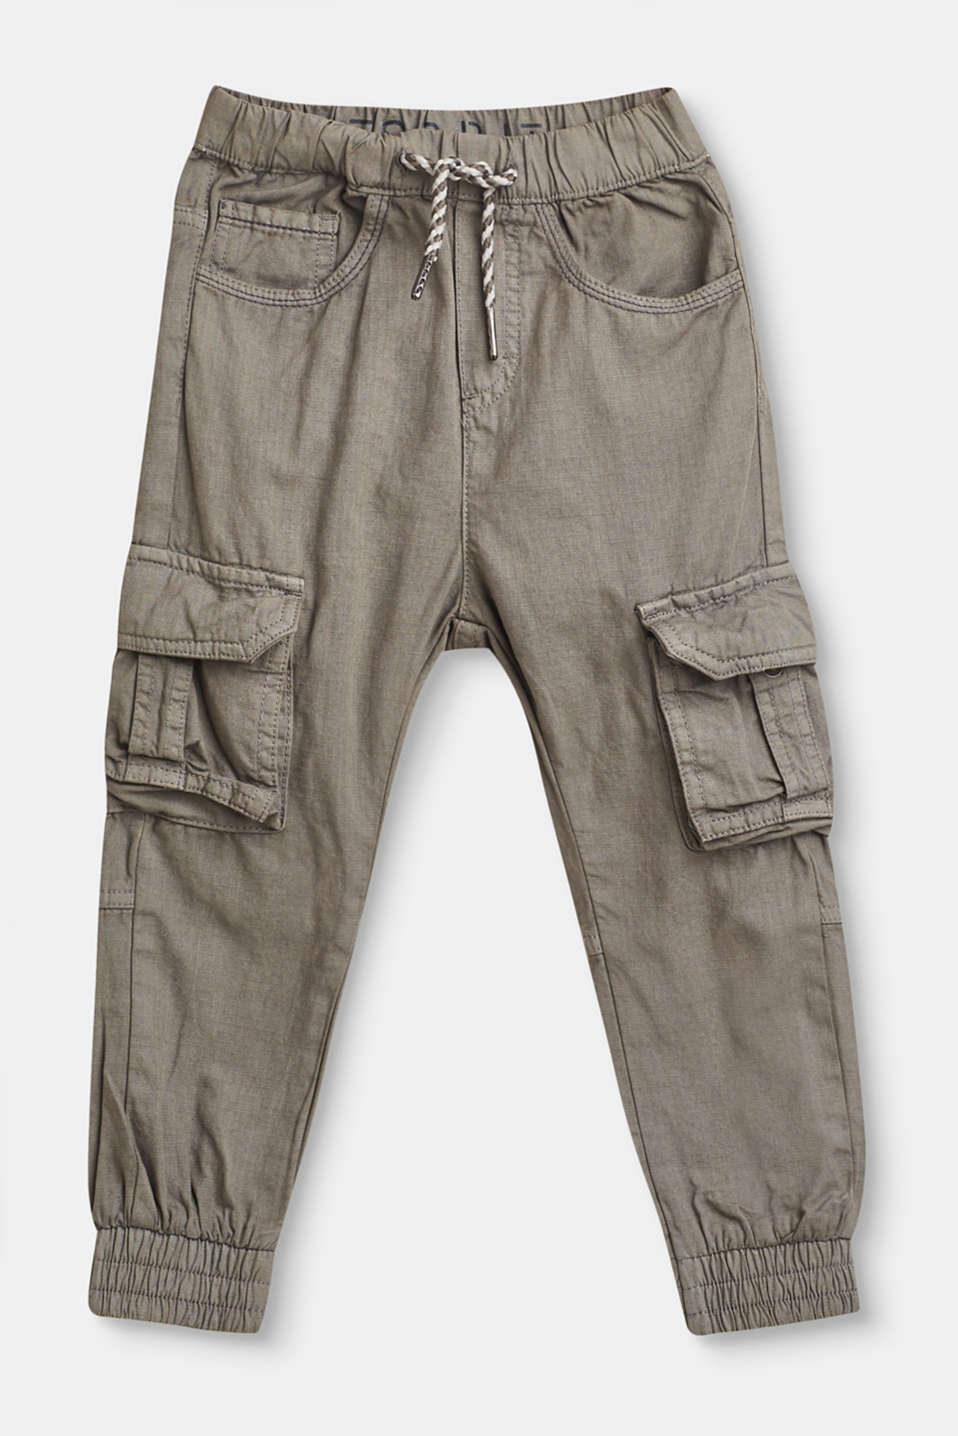 Esprit - Cotton cargo trousers with elasticated waist